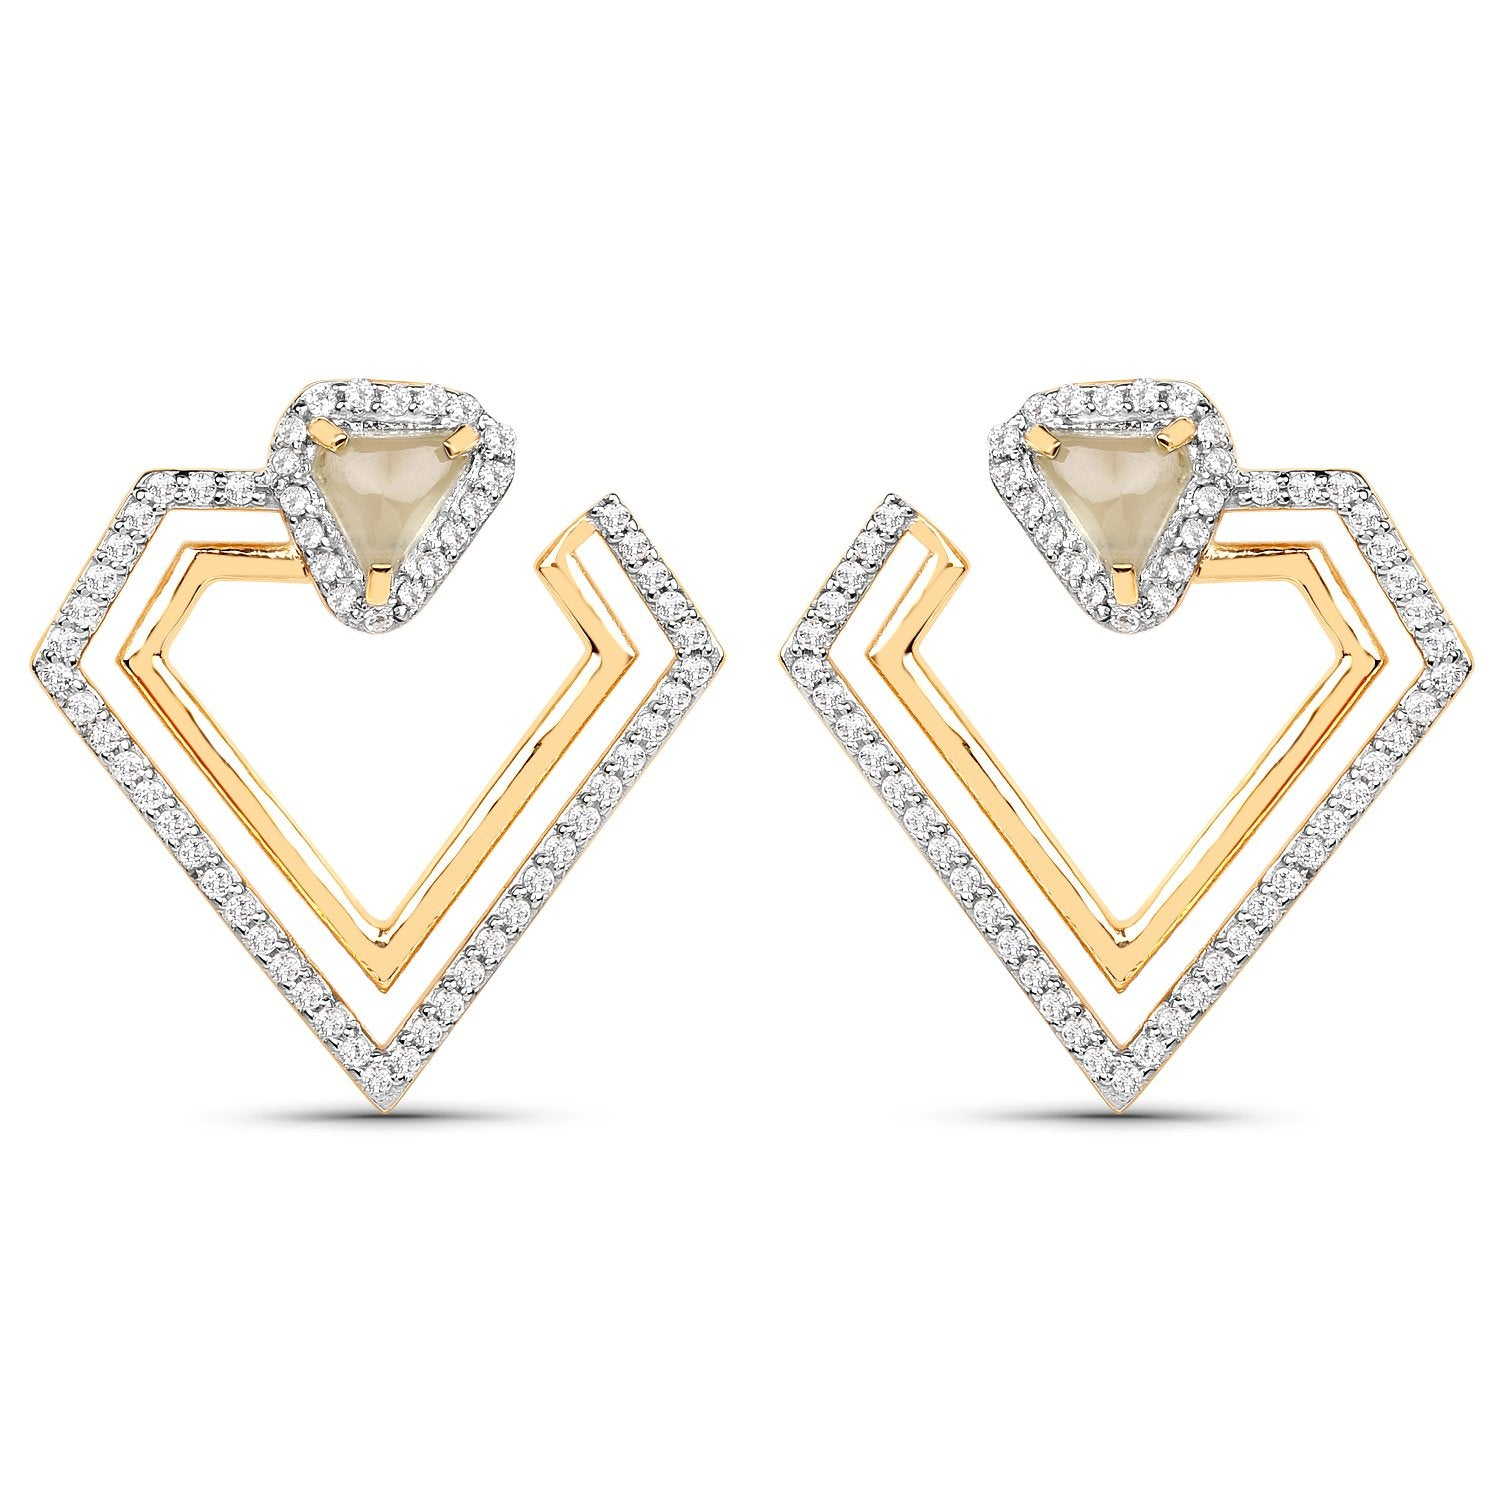 LoveHuang 2.04 Carats Genuine Prehnite and White Topaz Double Diamond Earrings Solid .925 Sterling Silver With 18KT Yellow Gold Plating